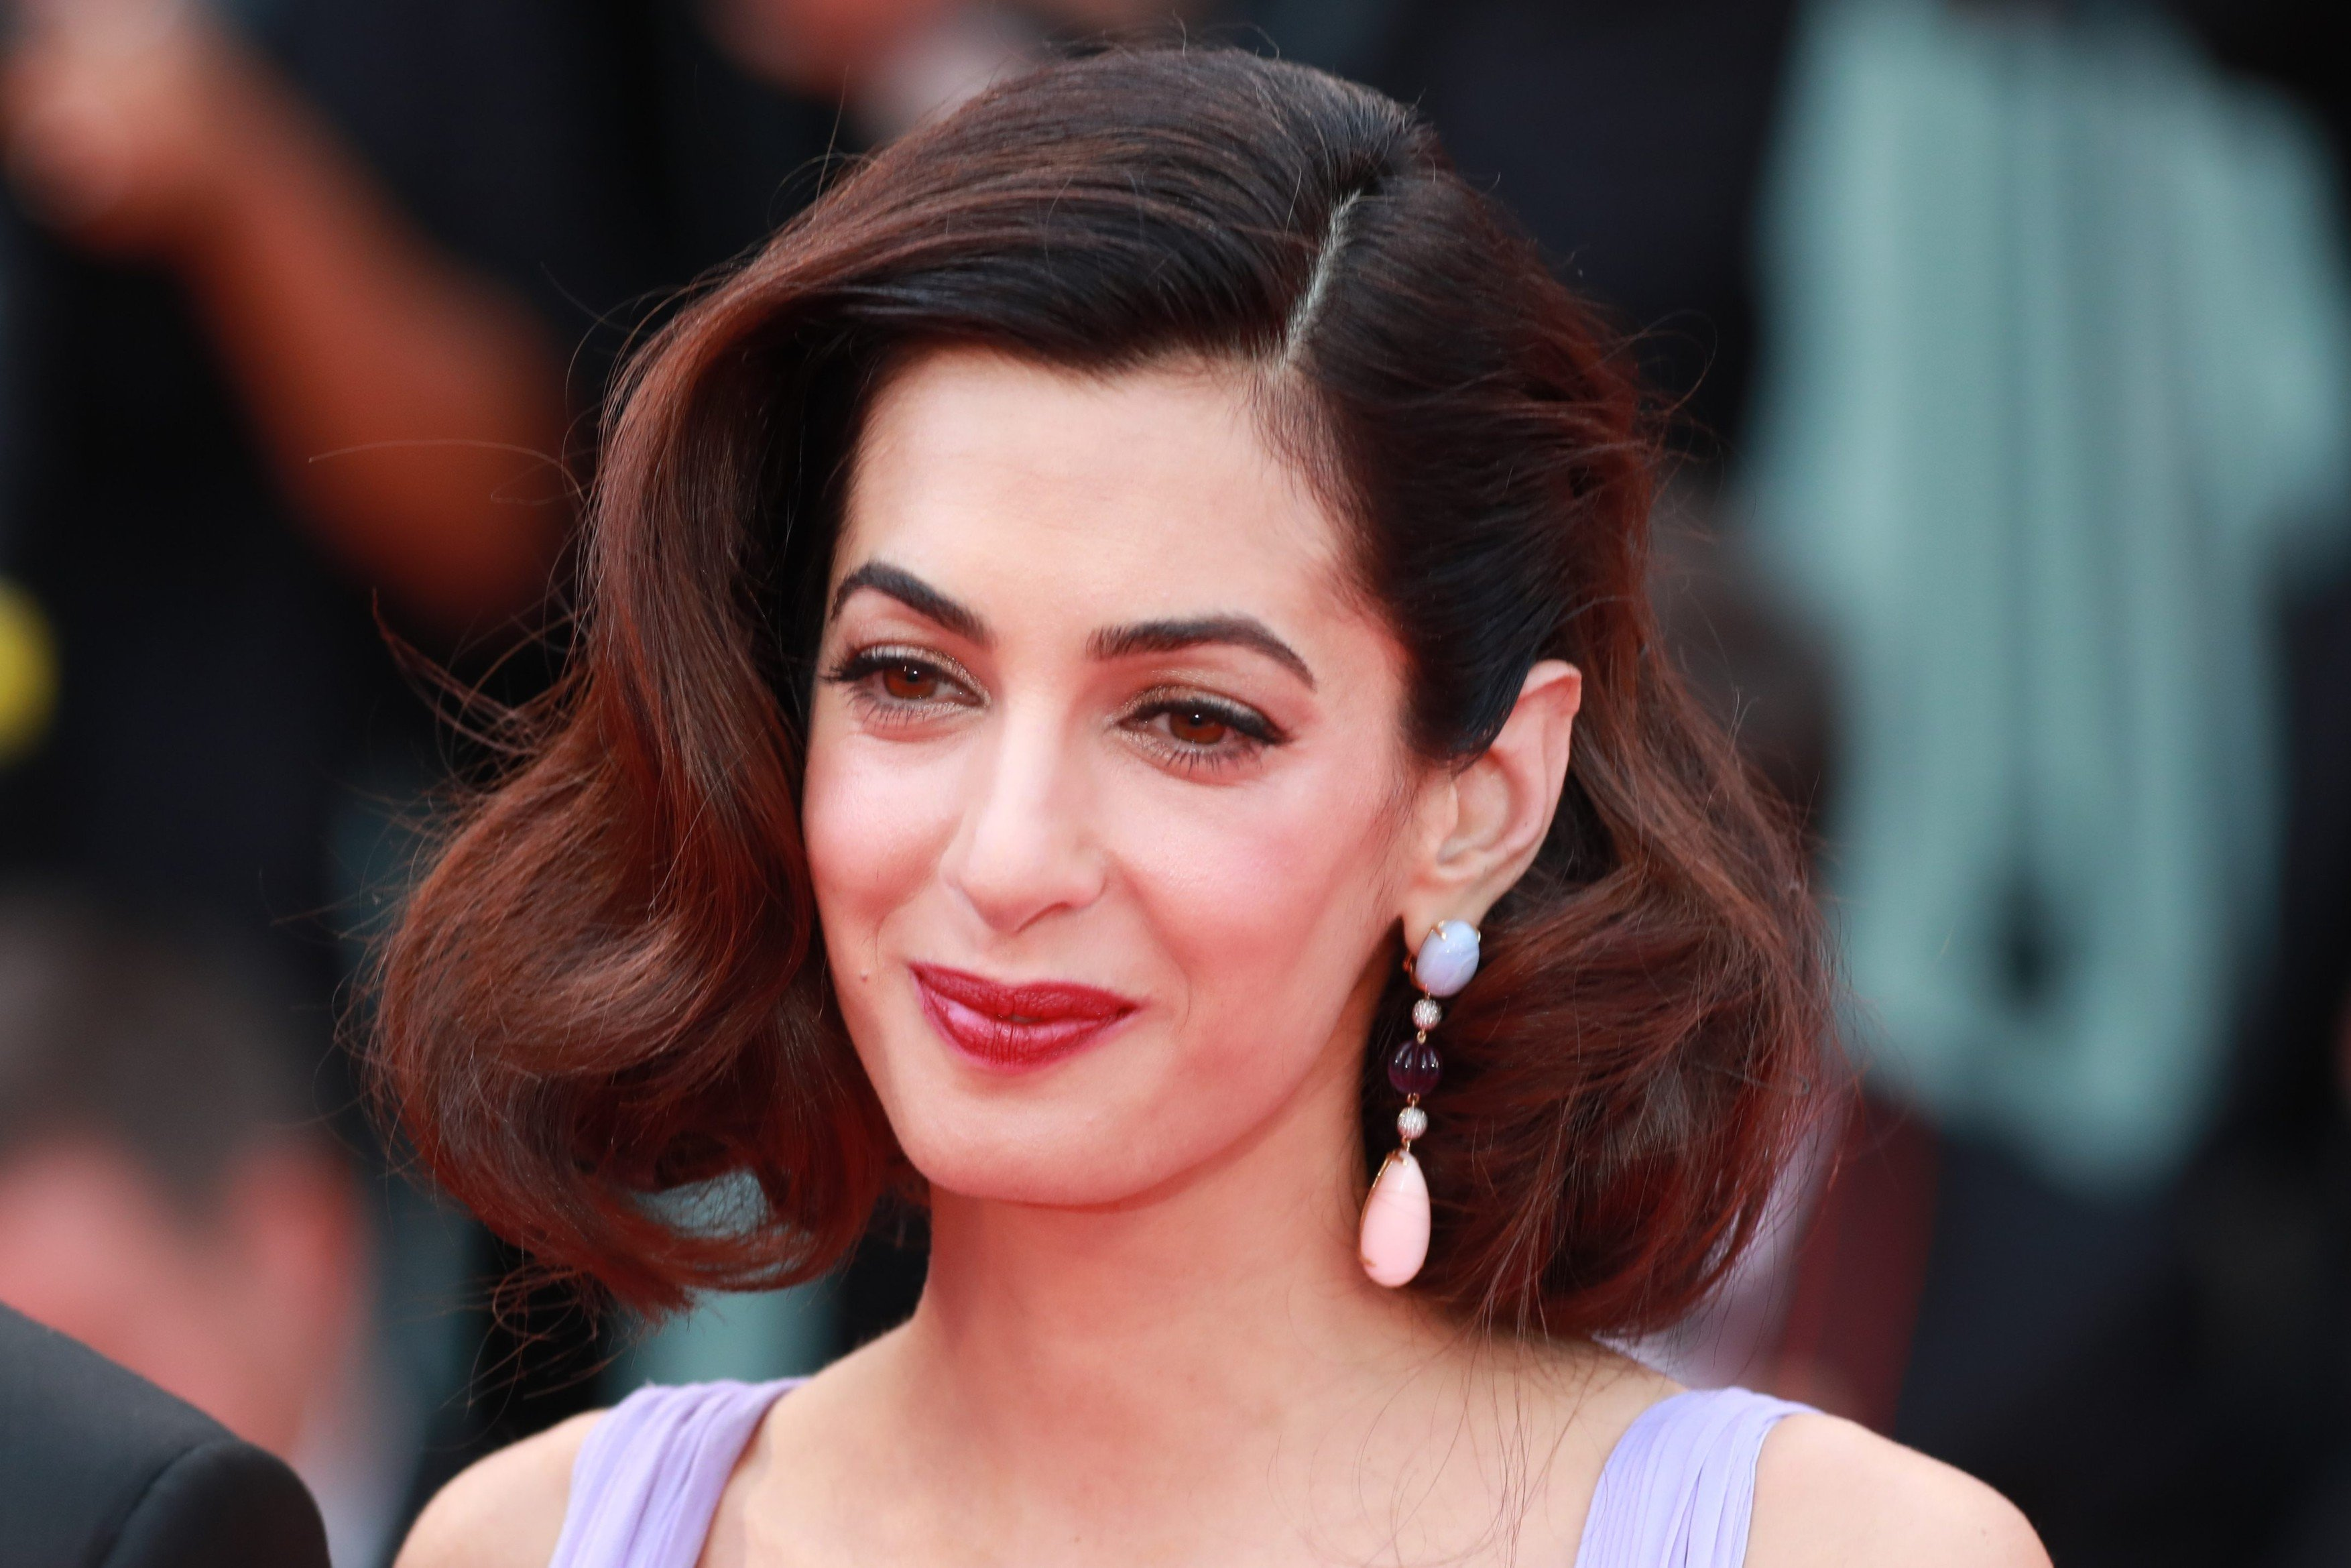 ; Actors Matt Damon and Julianne Moore with US Director George Clooney and his wife Amal Clooney arrive on the Red Carpet for the screening of the 'Suburbicon' photocall during the 74th Venice Film Festival on September 2, 2017 in Venice, Italy Pictured: Amal Clooney, Image: 348123158, License: Rights-managed, Restrictions: , Model Release: no, Credit line: Profimedia, MAXPPP